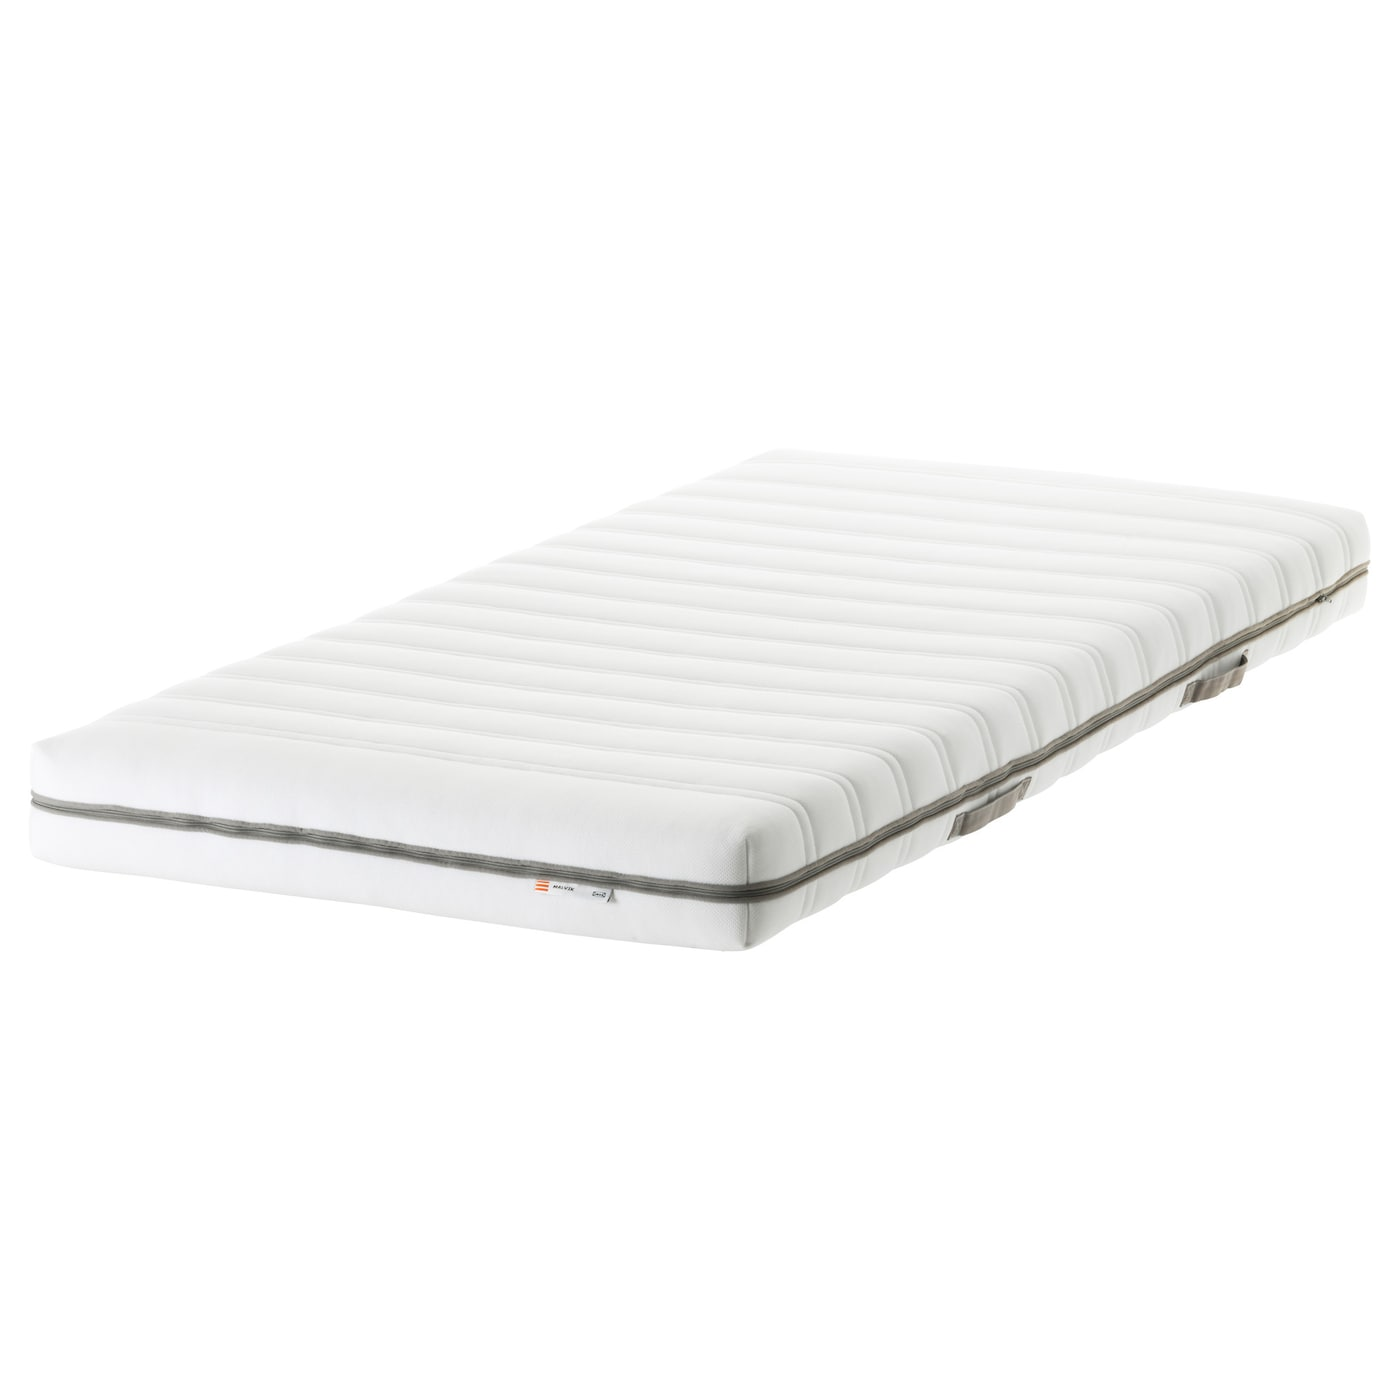 malvik matelas en mousse ferme blanc 90 x 200 cm ikea. Black Bedroom Furniture Sets. Home Design Ideas